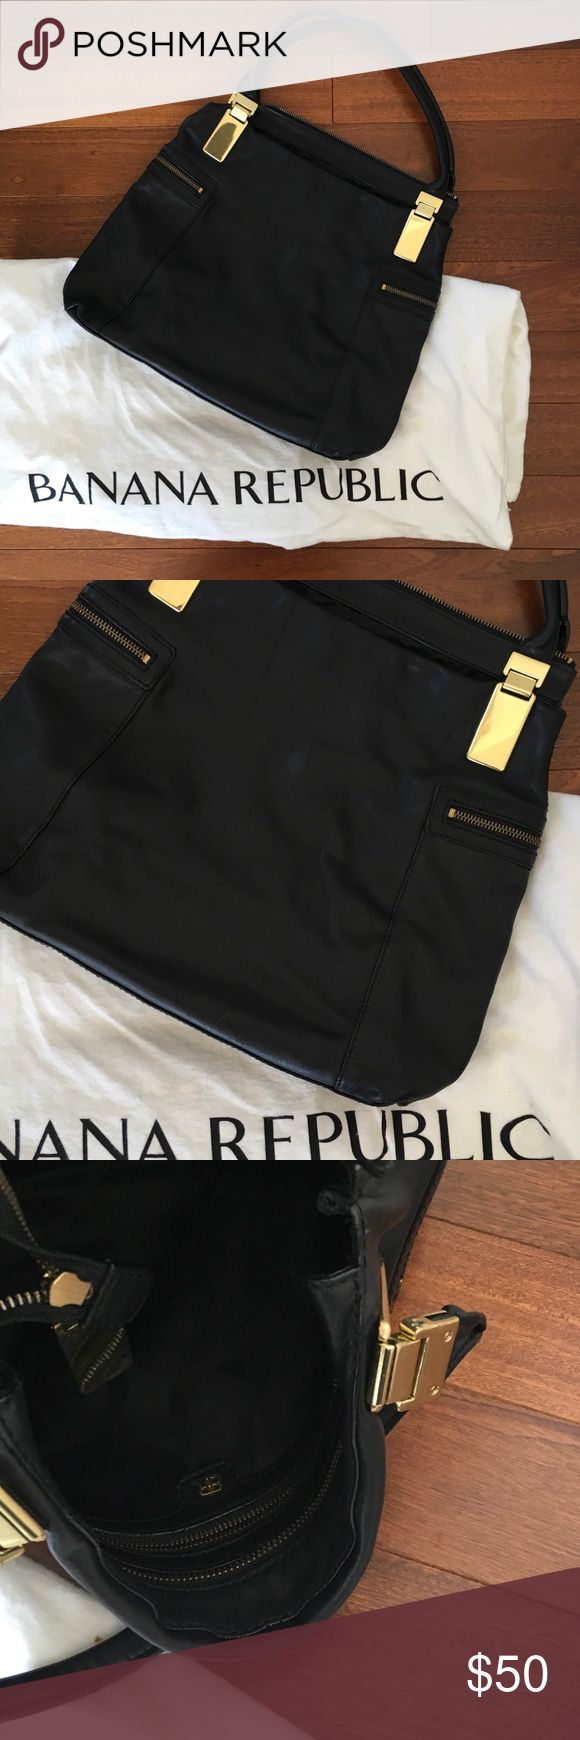 Banana republic black Satchel Gently used authentic black leather purse. Clean and no damage. Can fit a lot and very sturdy! Banana Republic Bags Satchels